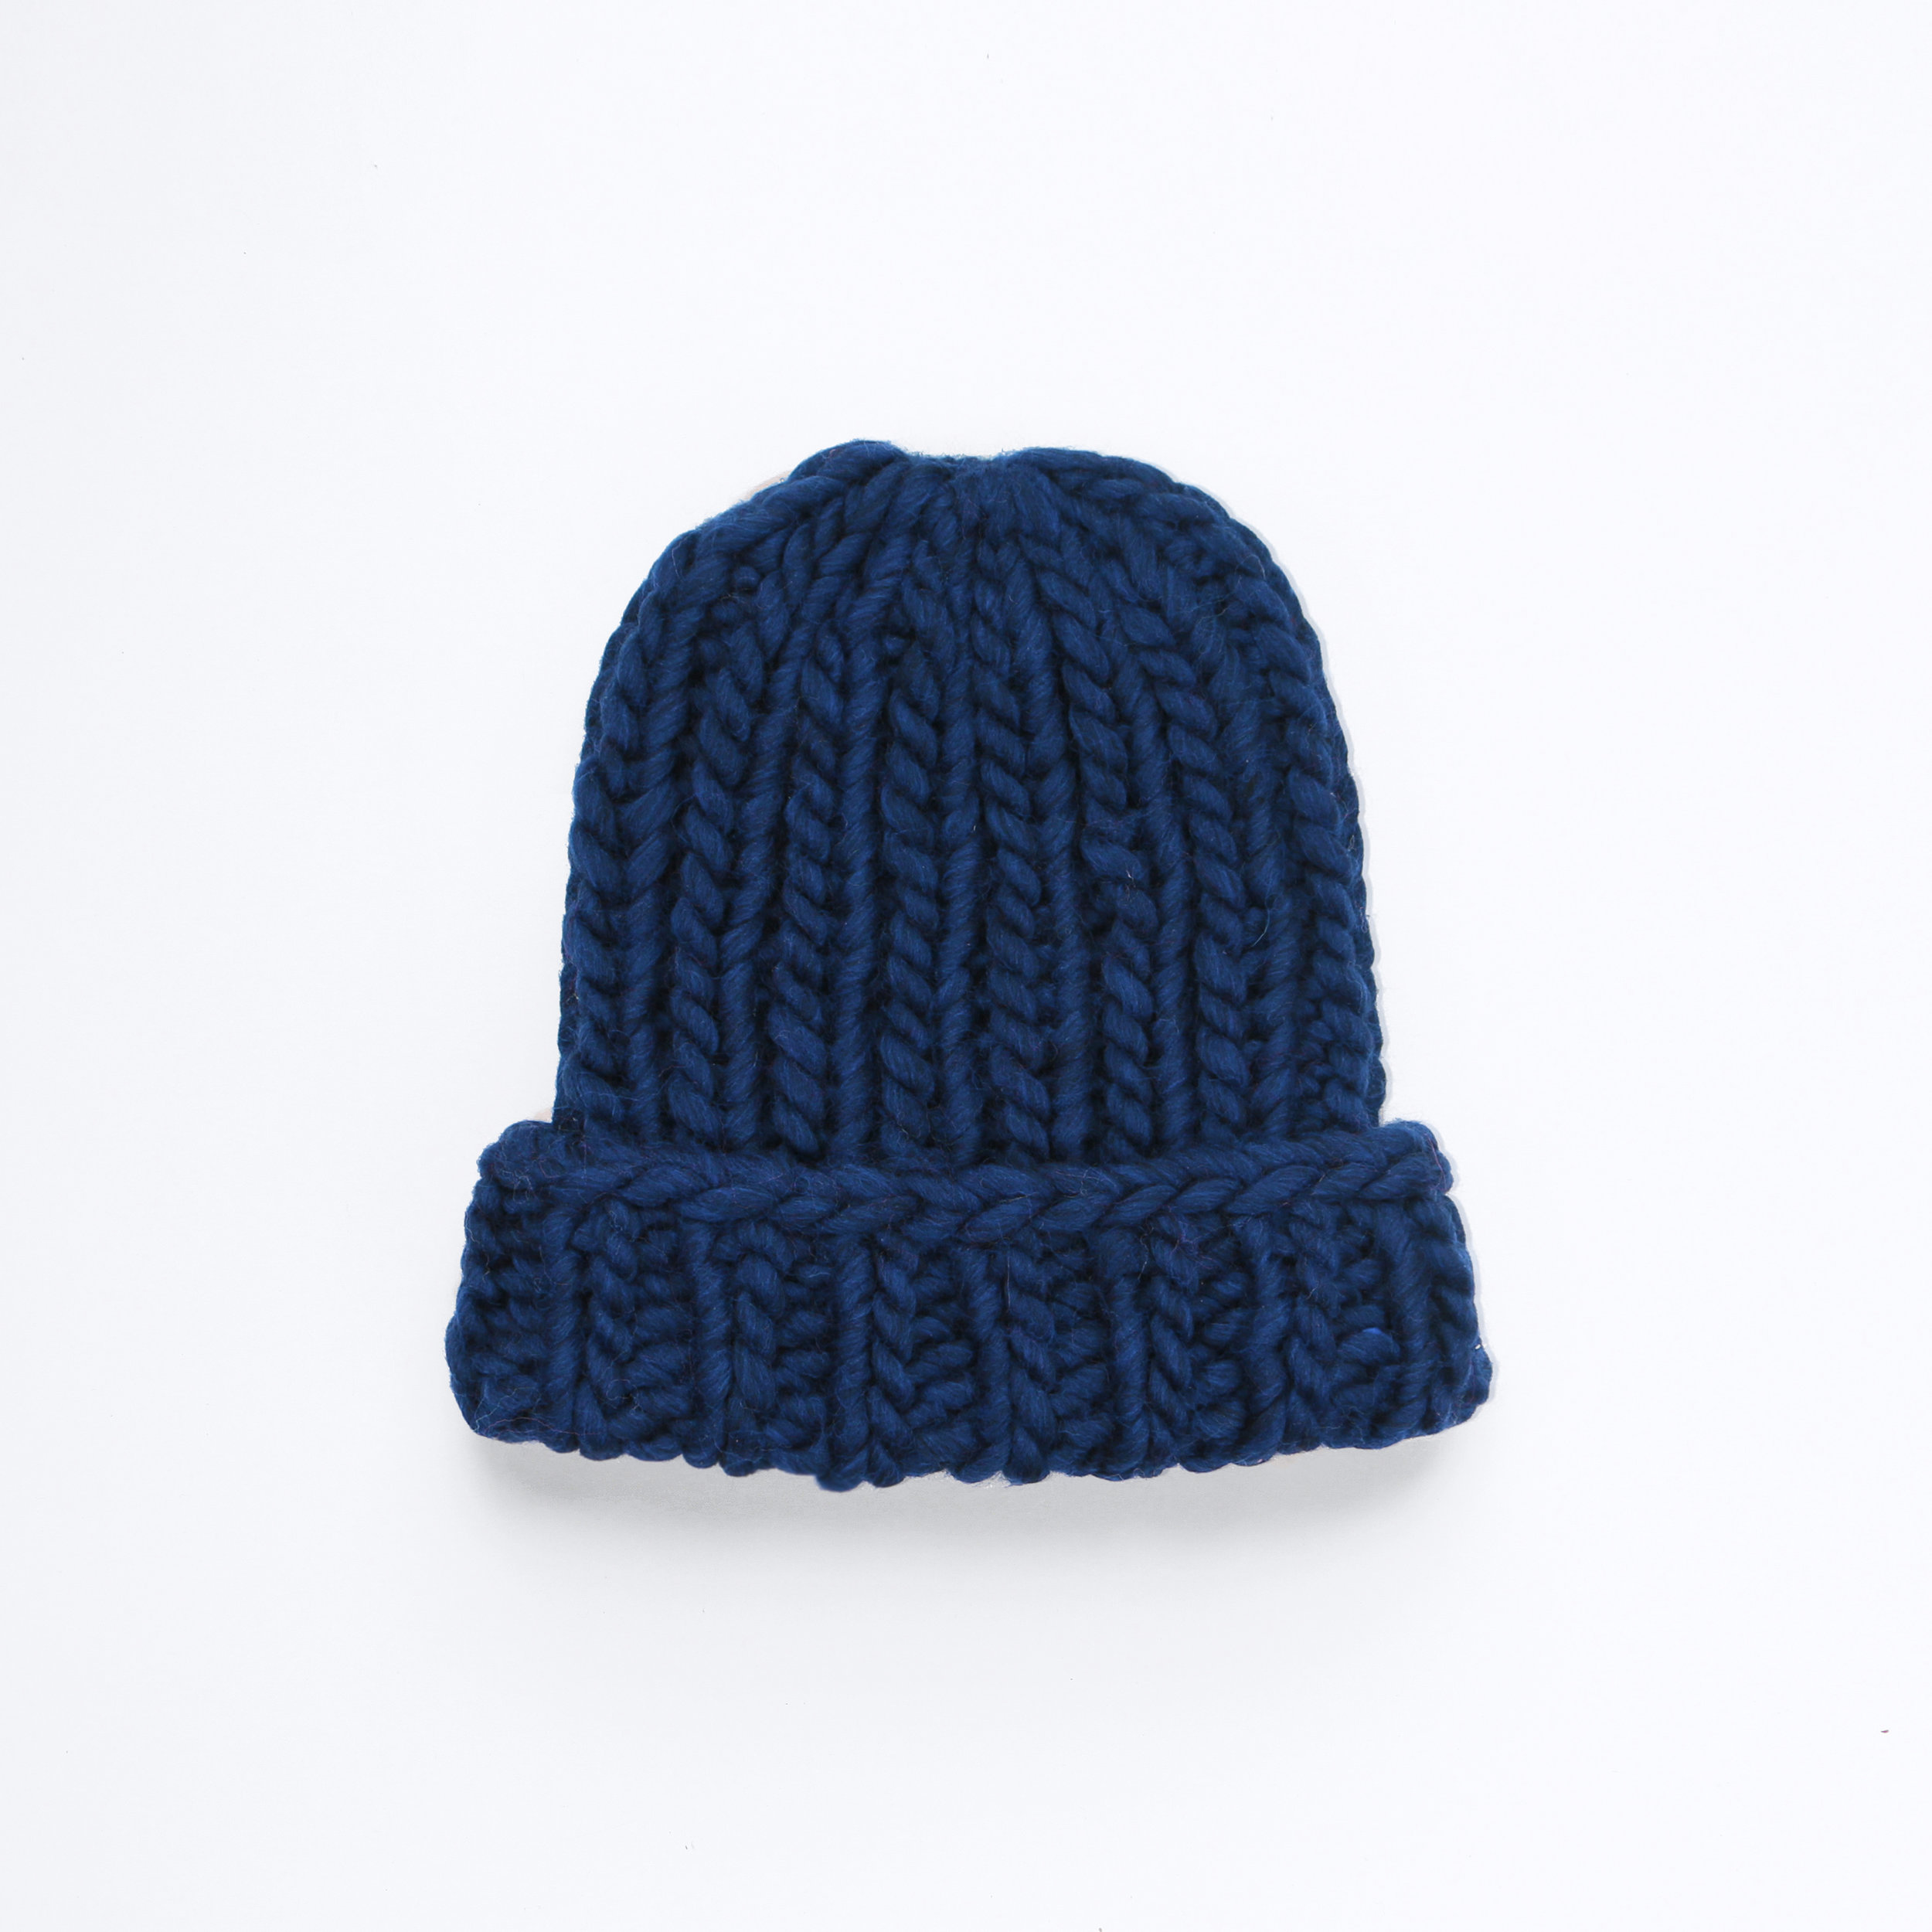 GO BIG OR GO HOME BEANIE - Midnight blue